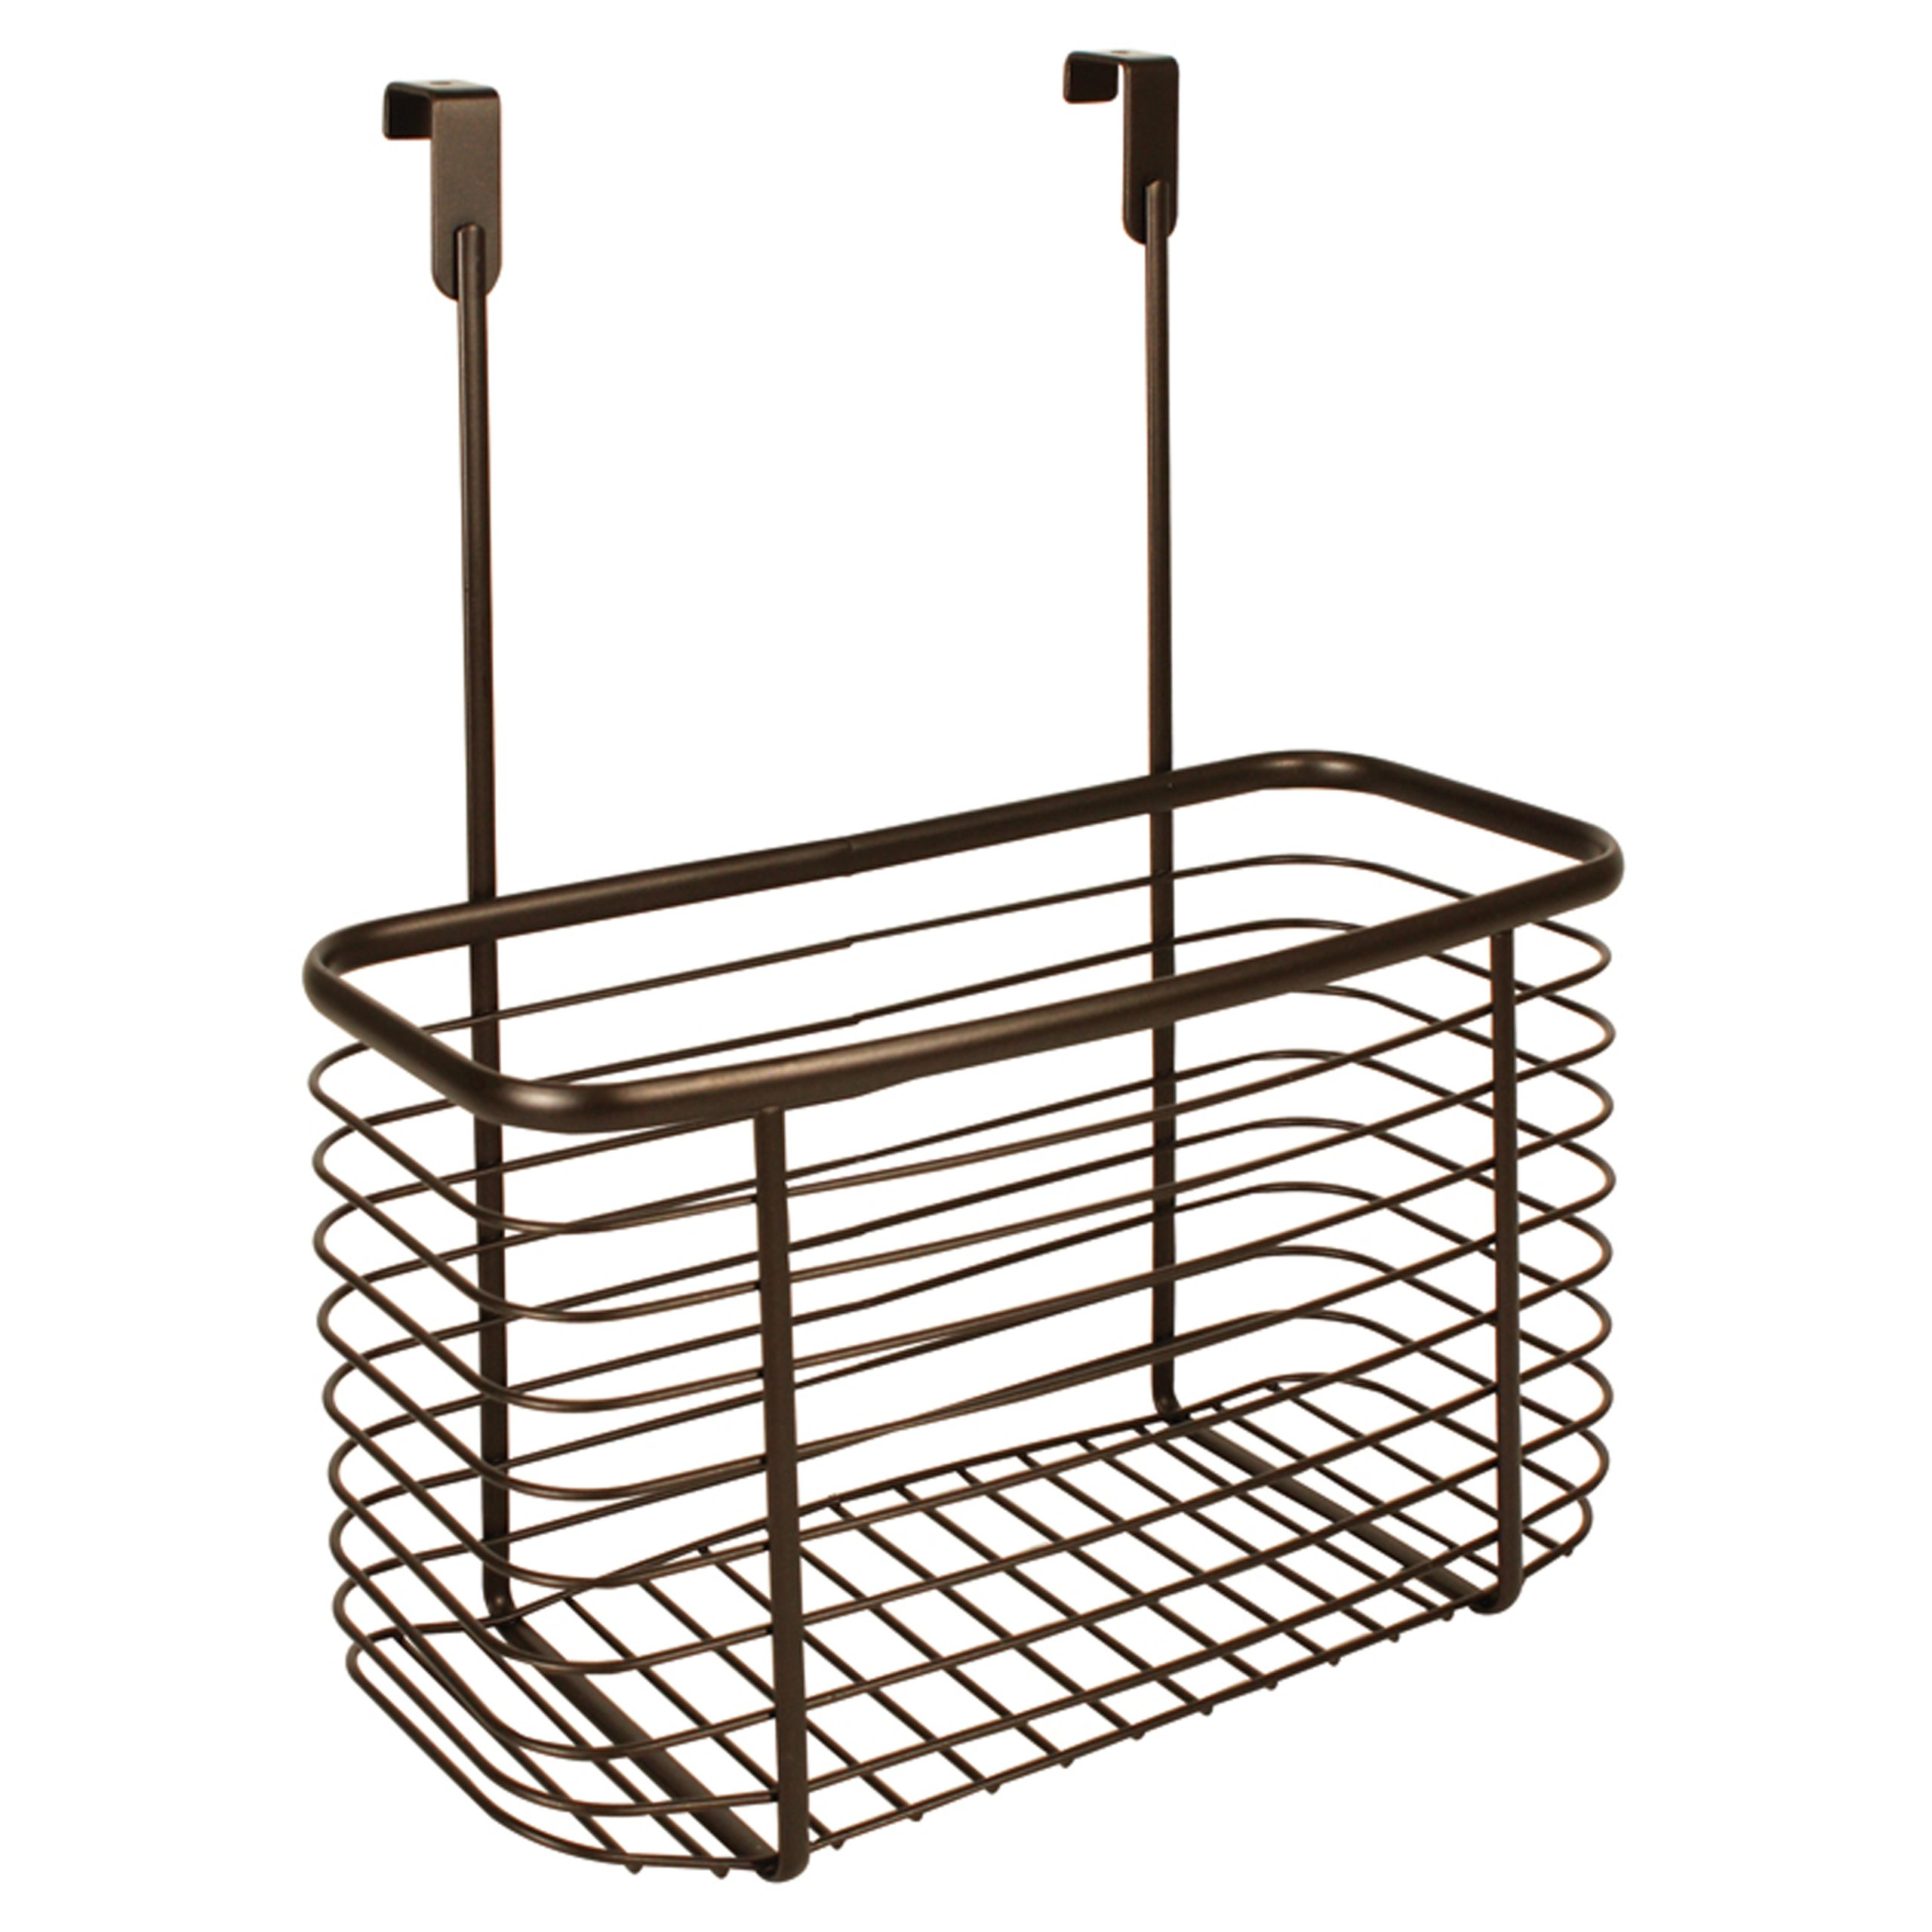 InterDesign Axis Over the Cabinet Kitchen Storage Organizer Basket for Aluminum Foil, Sandwich Bags, Cleaning Supplies - Large, Bronze